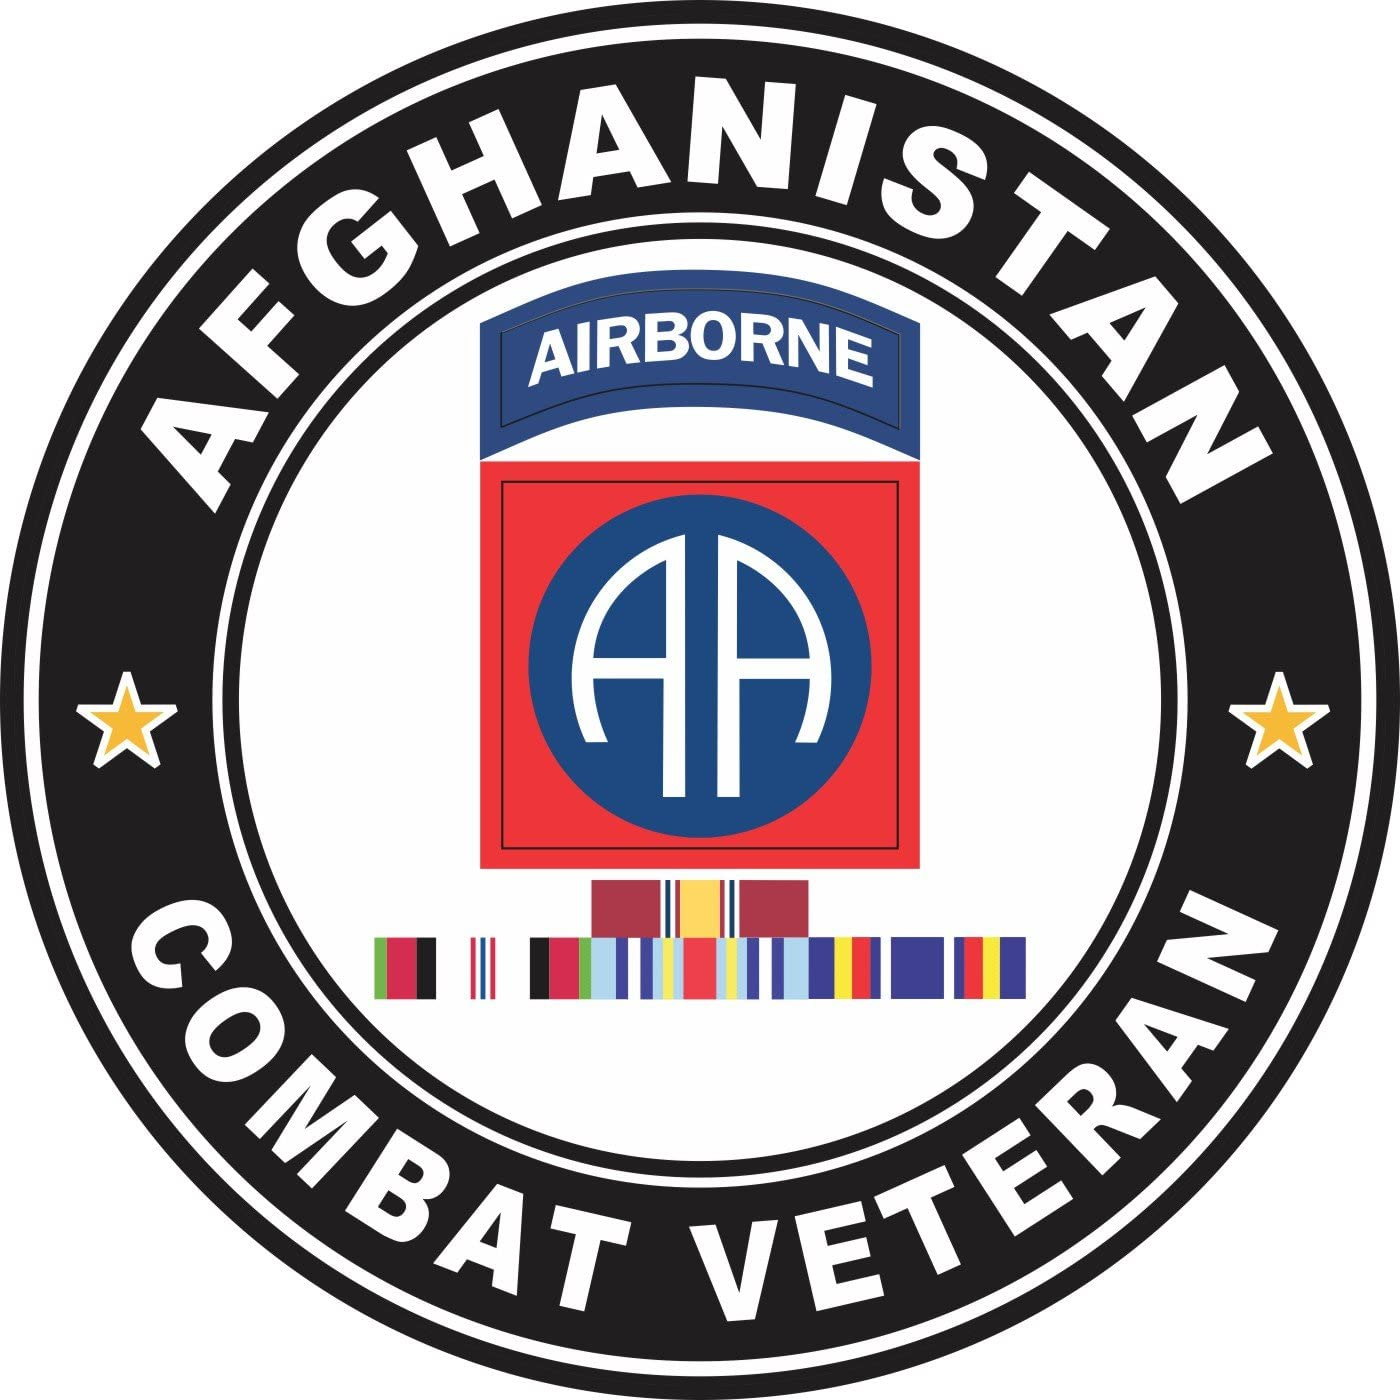 Military Vet Shop US Army 82nd Airborne Afghanistan Campaign Ribbons Window Bumper Sticker Decal 3.8